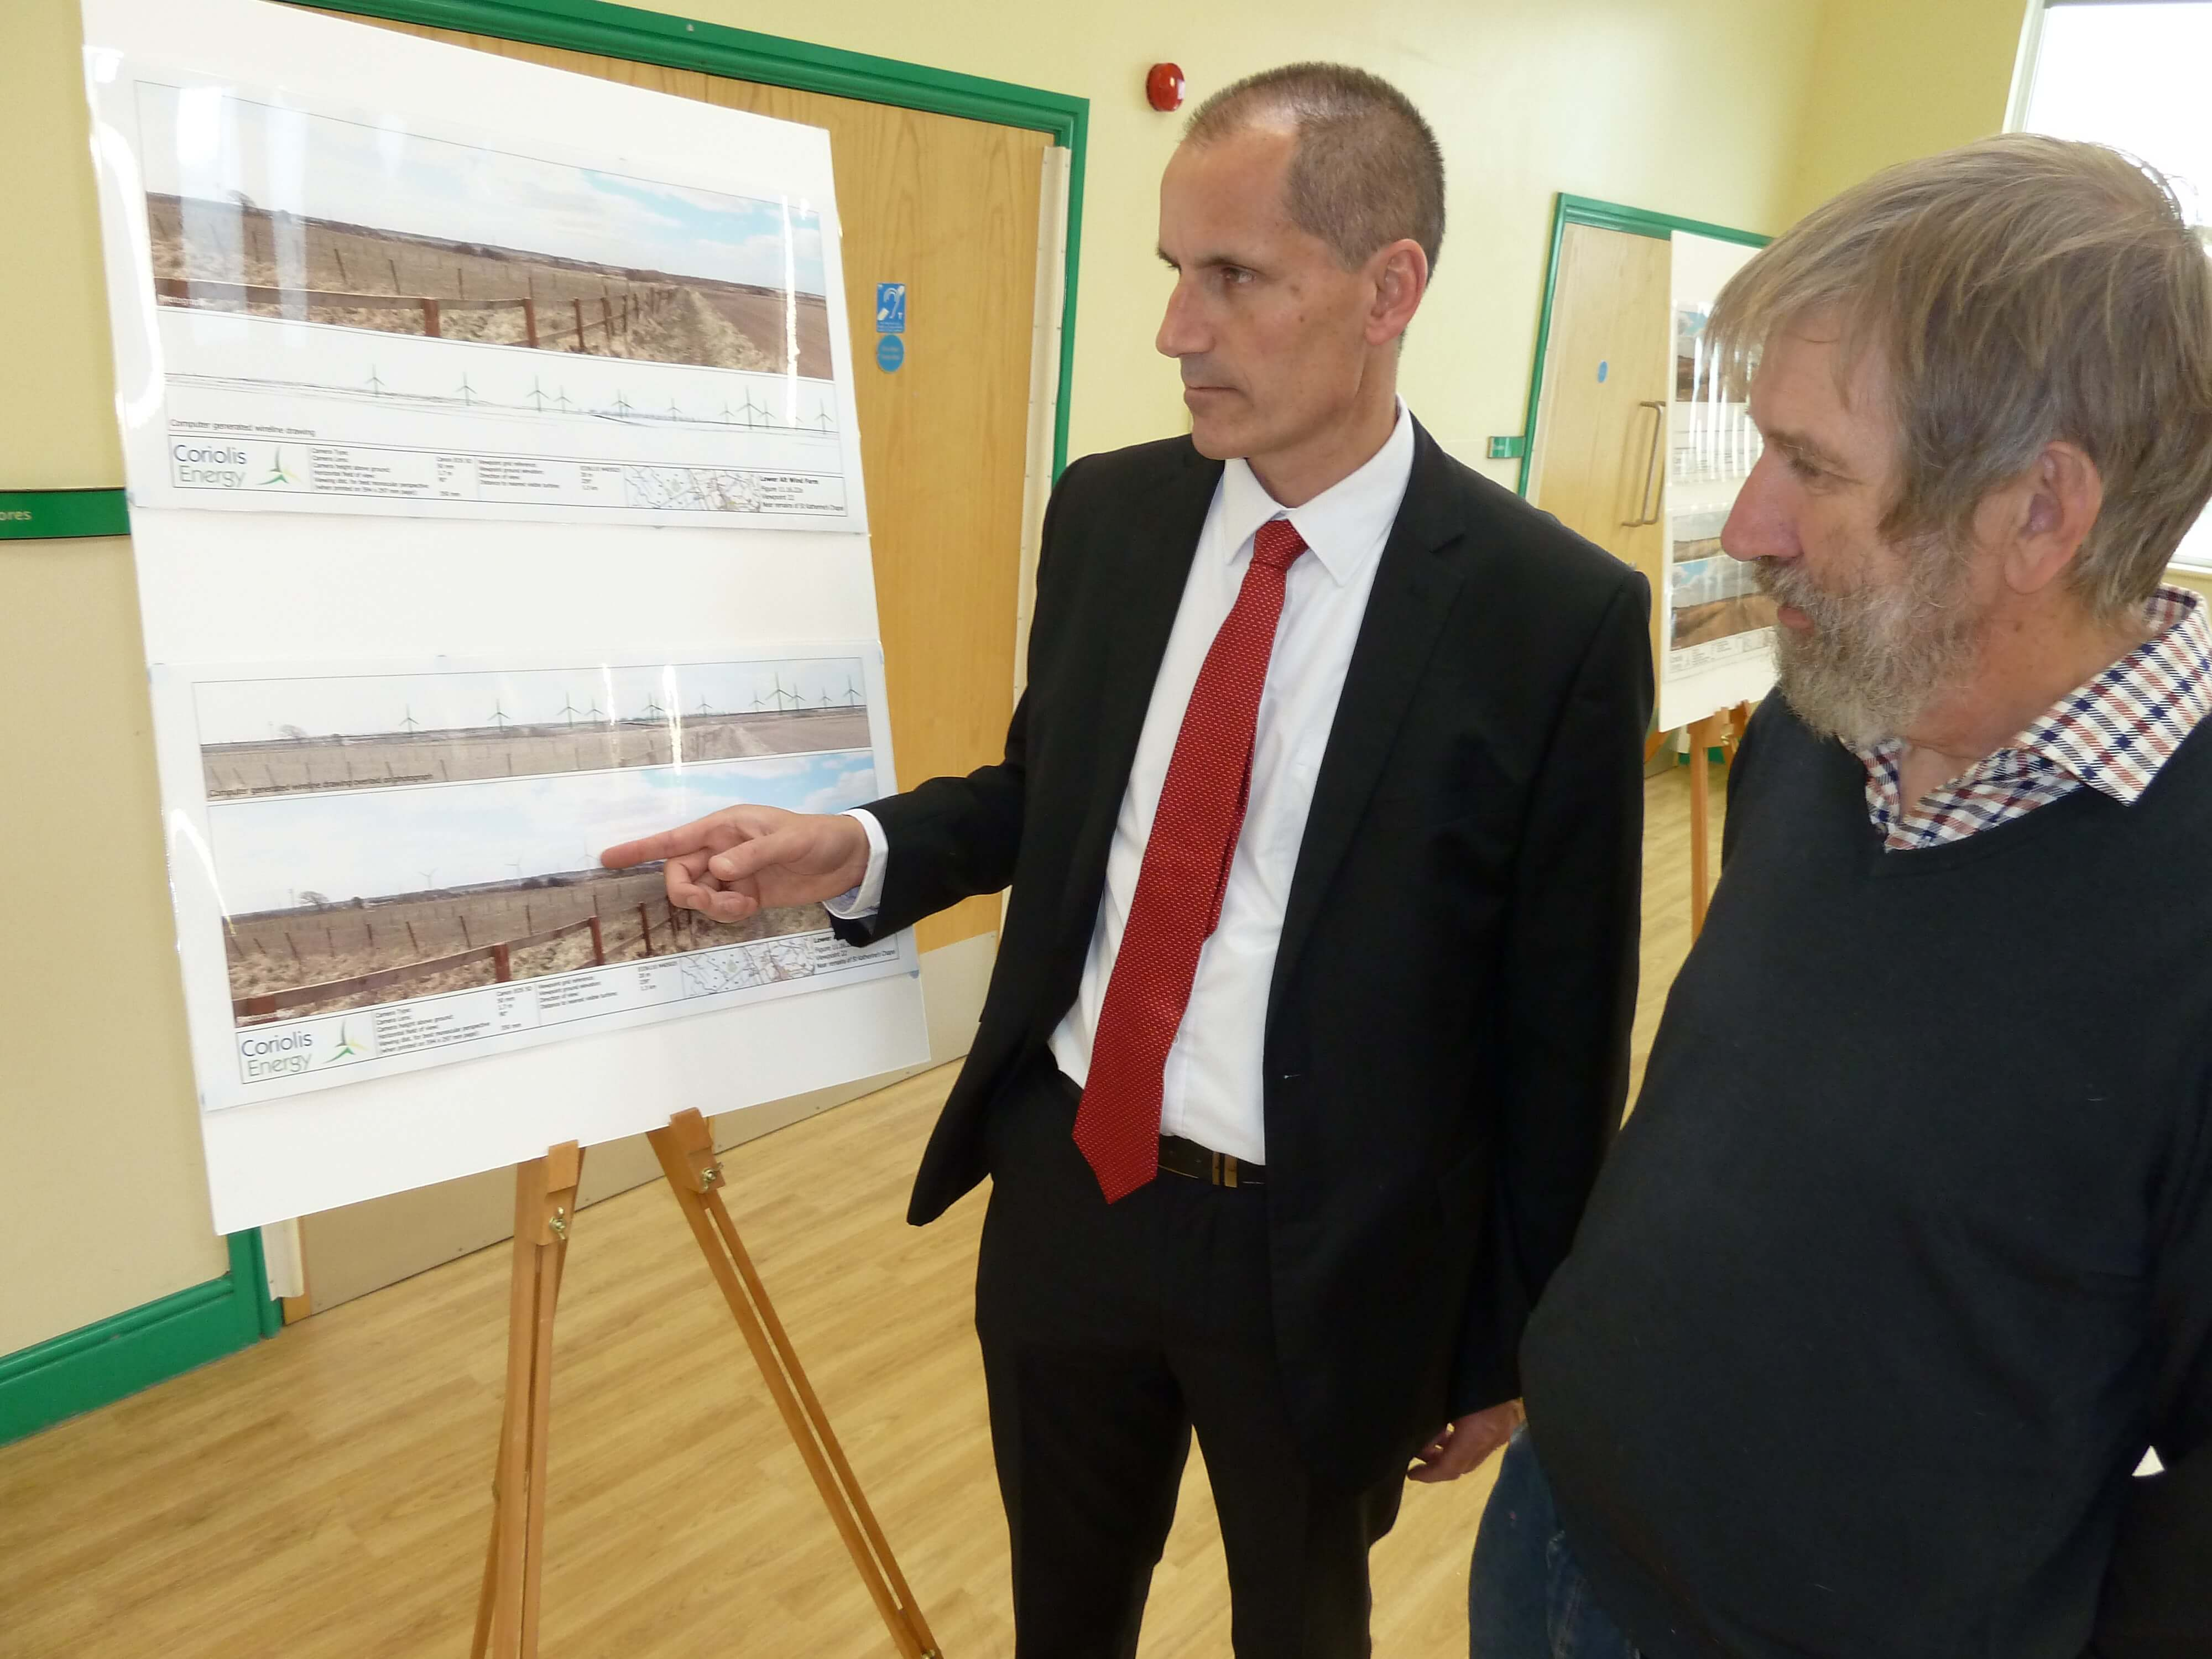 Sefton Central Labour MP Bill Esterson with Lydiate Parish Council Labour chairman Cllr John Bailey at the proposed windfarm exhibition at Lydiate Village Centre.